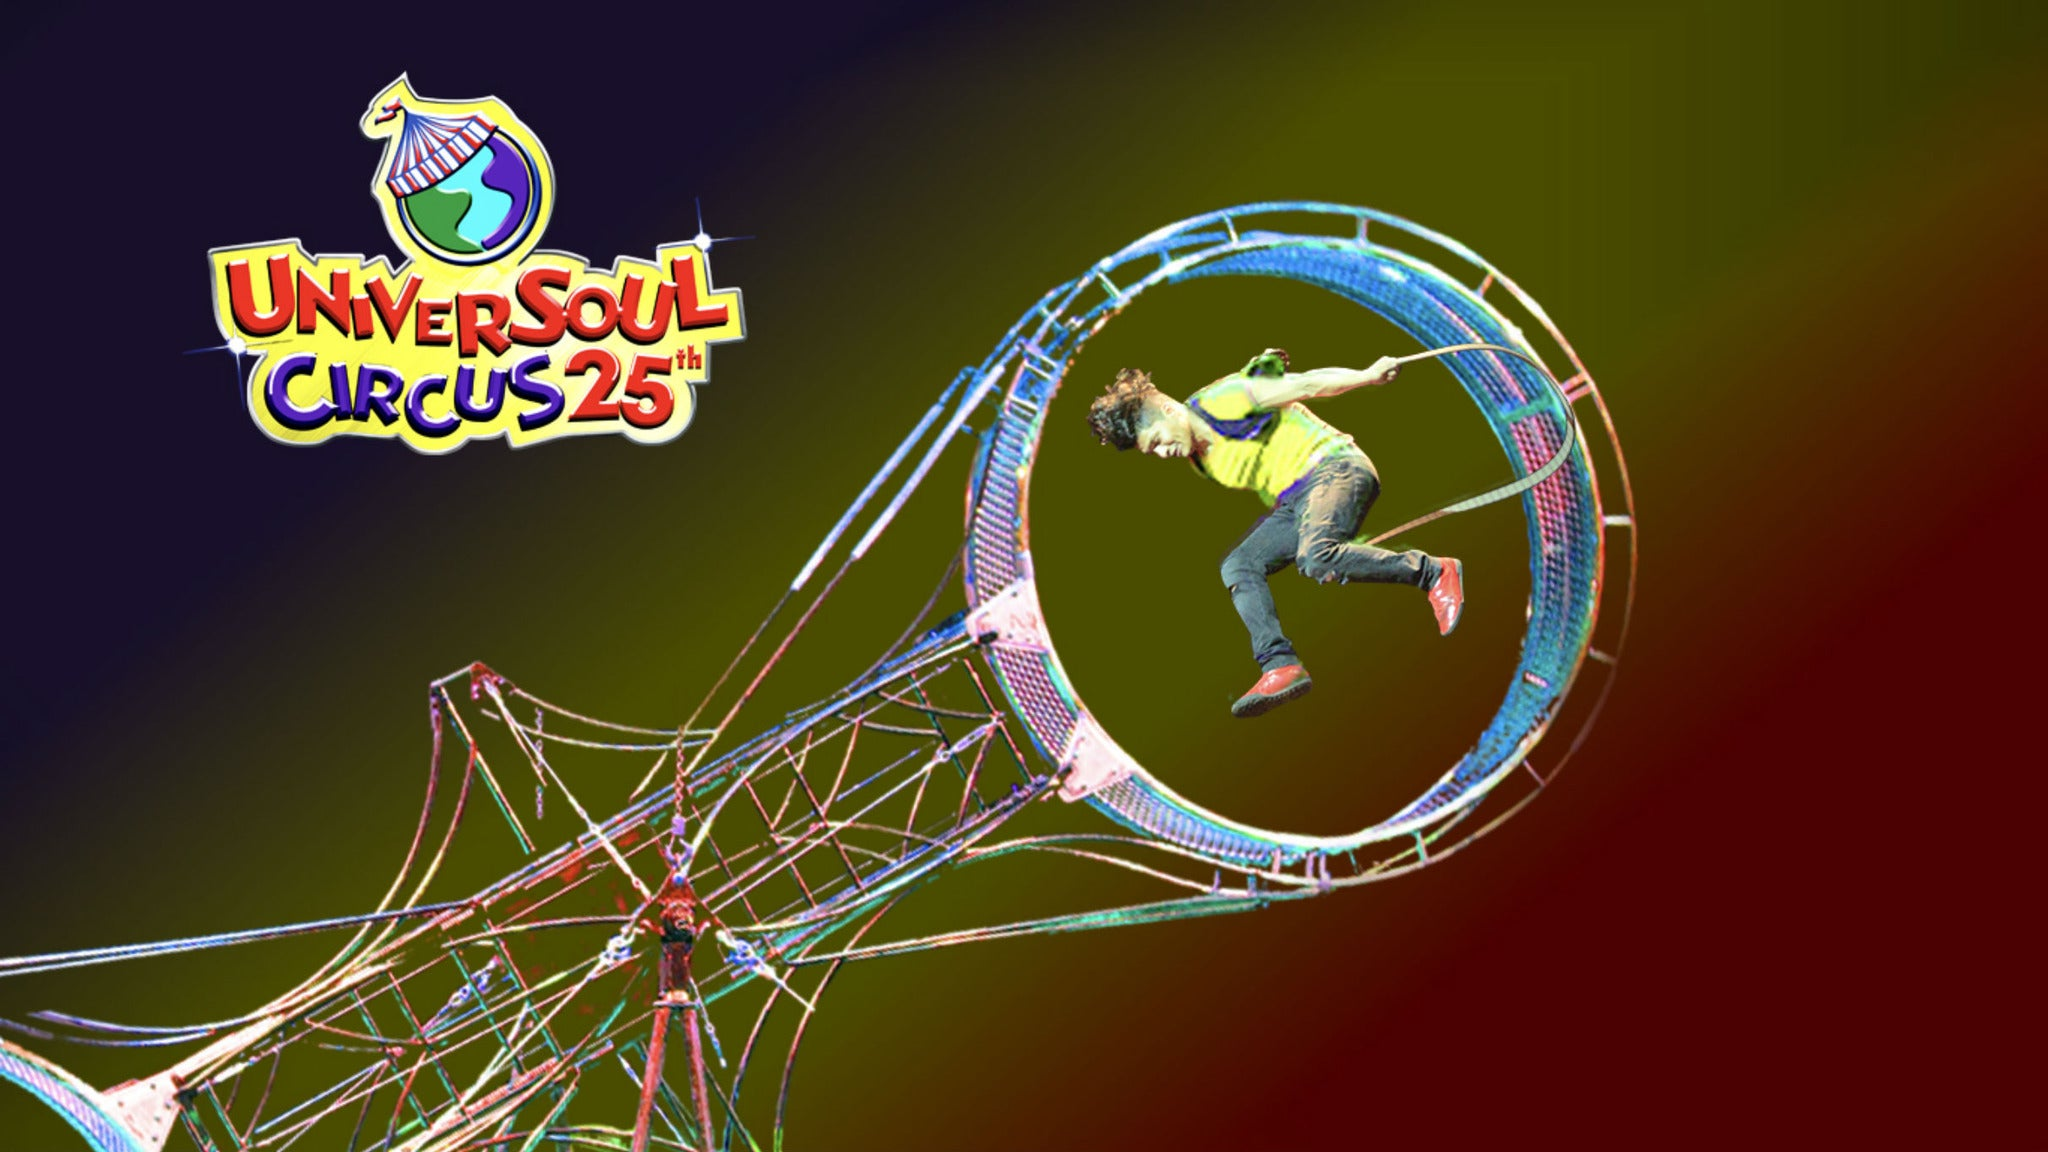 UniverSoul Circus at The Green Lot At Turner Field